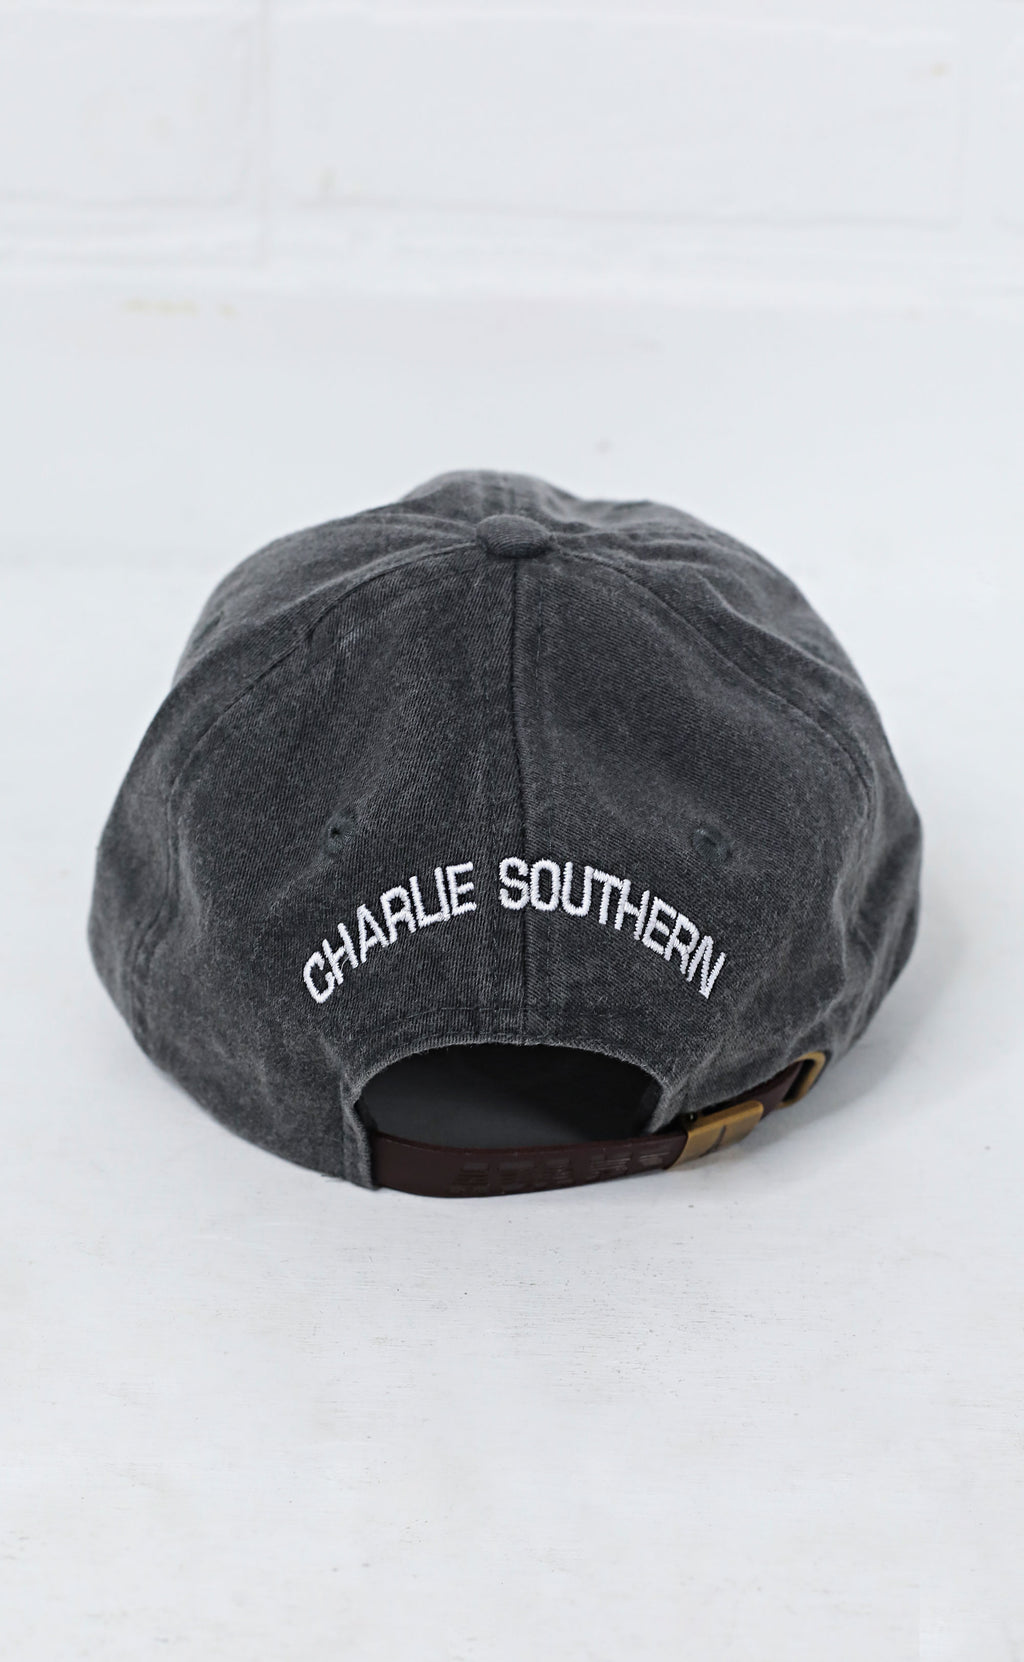 4f48cf163a3 ... discount code for charlie southern texas star hat 37926 e26c3